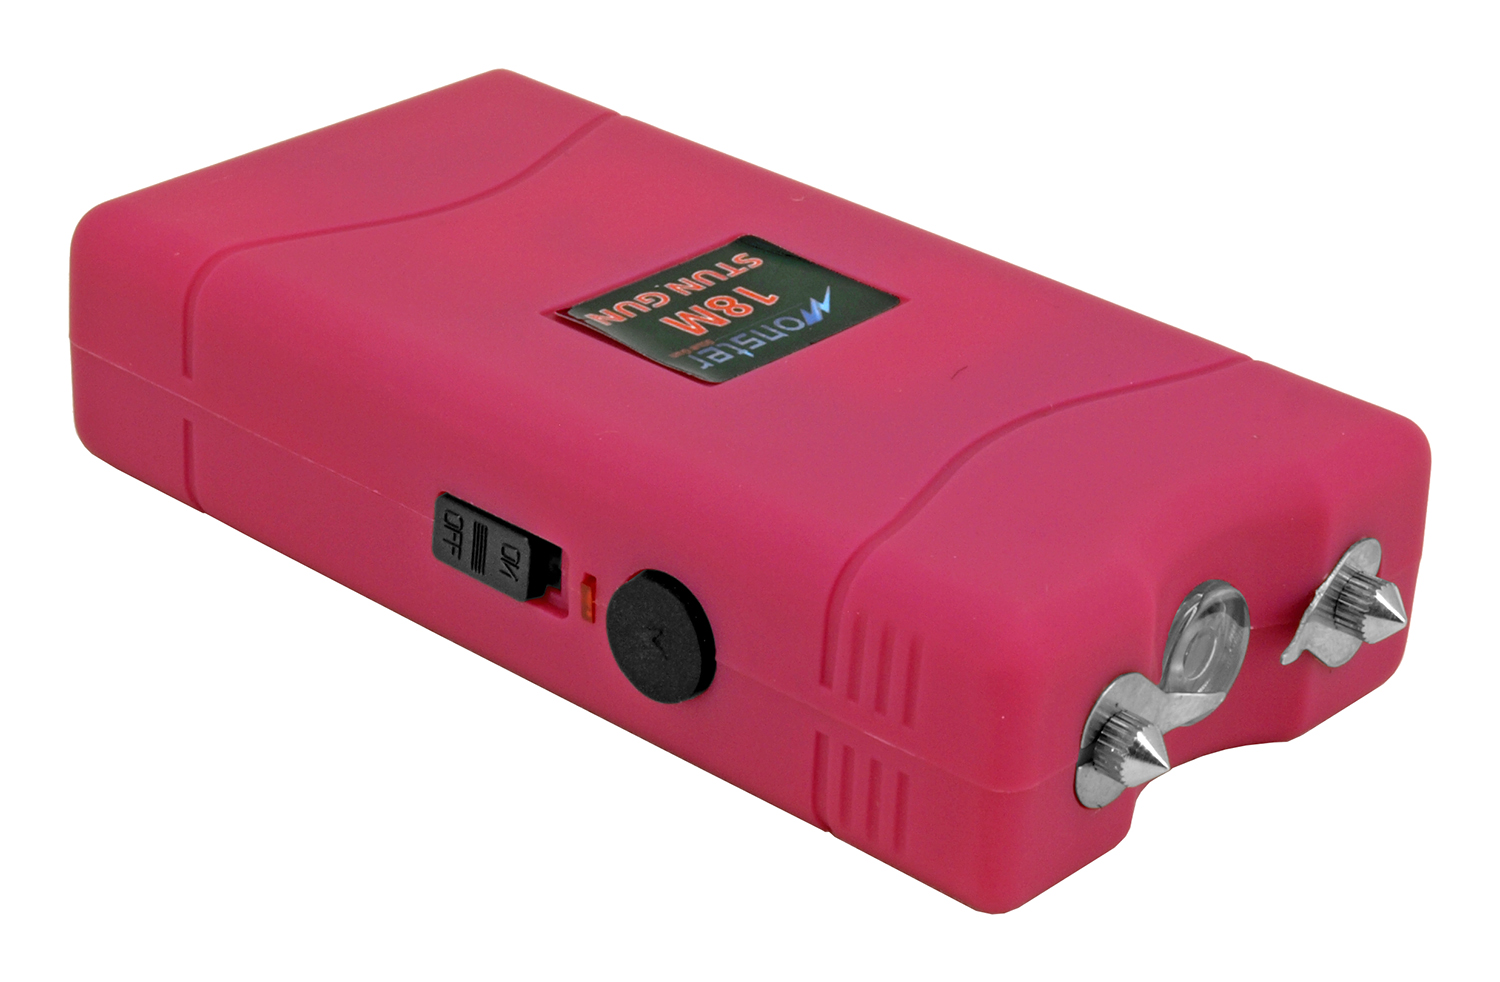 High Voltage Stun Gun with LED Flashlight - Pink